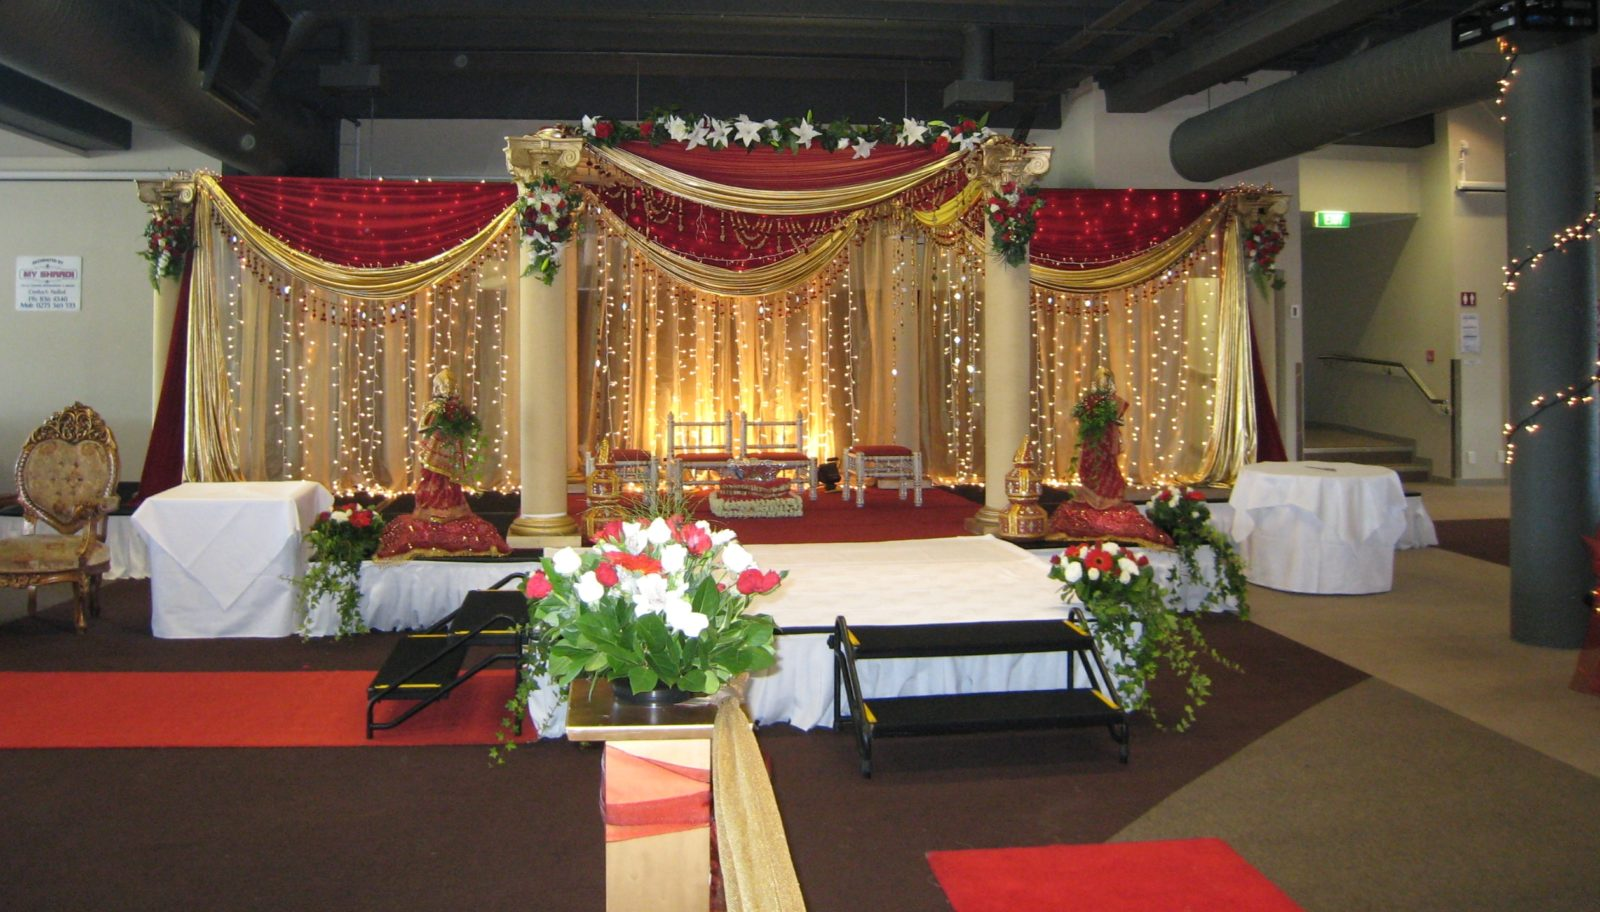 Indian wedding venues in auckland venues for indian weddings recommended spaces for your event junglespirit Gallery